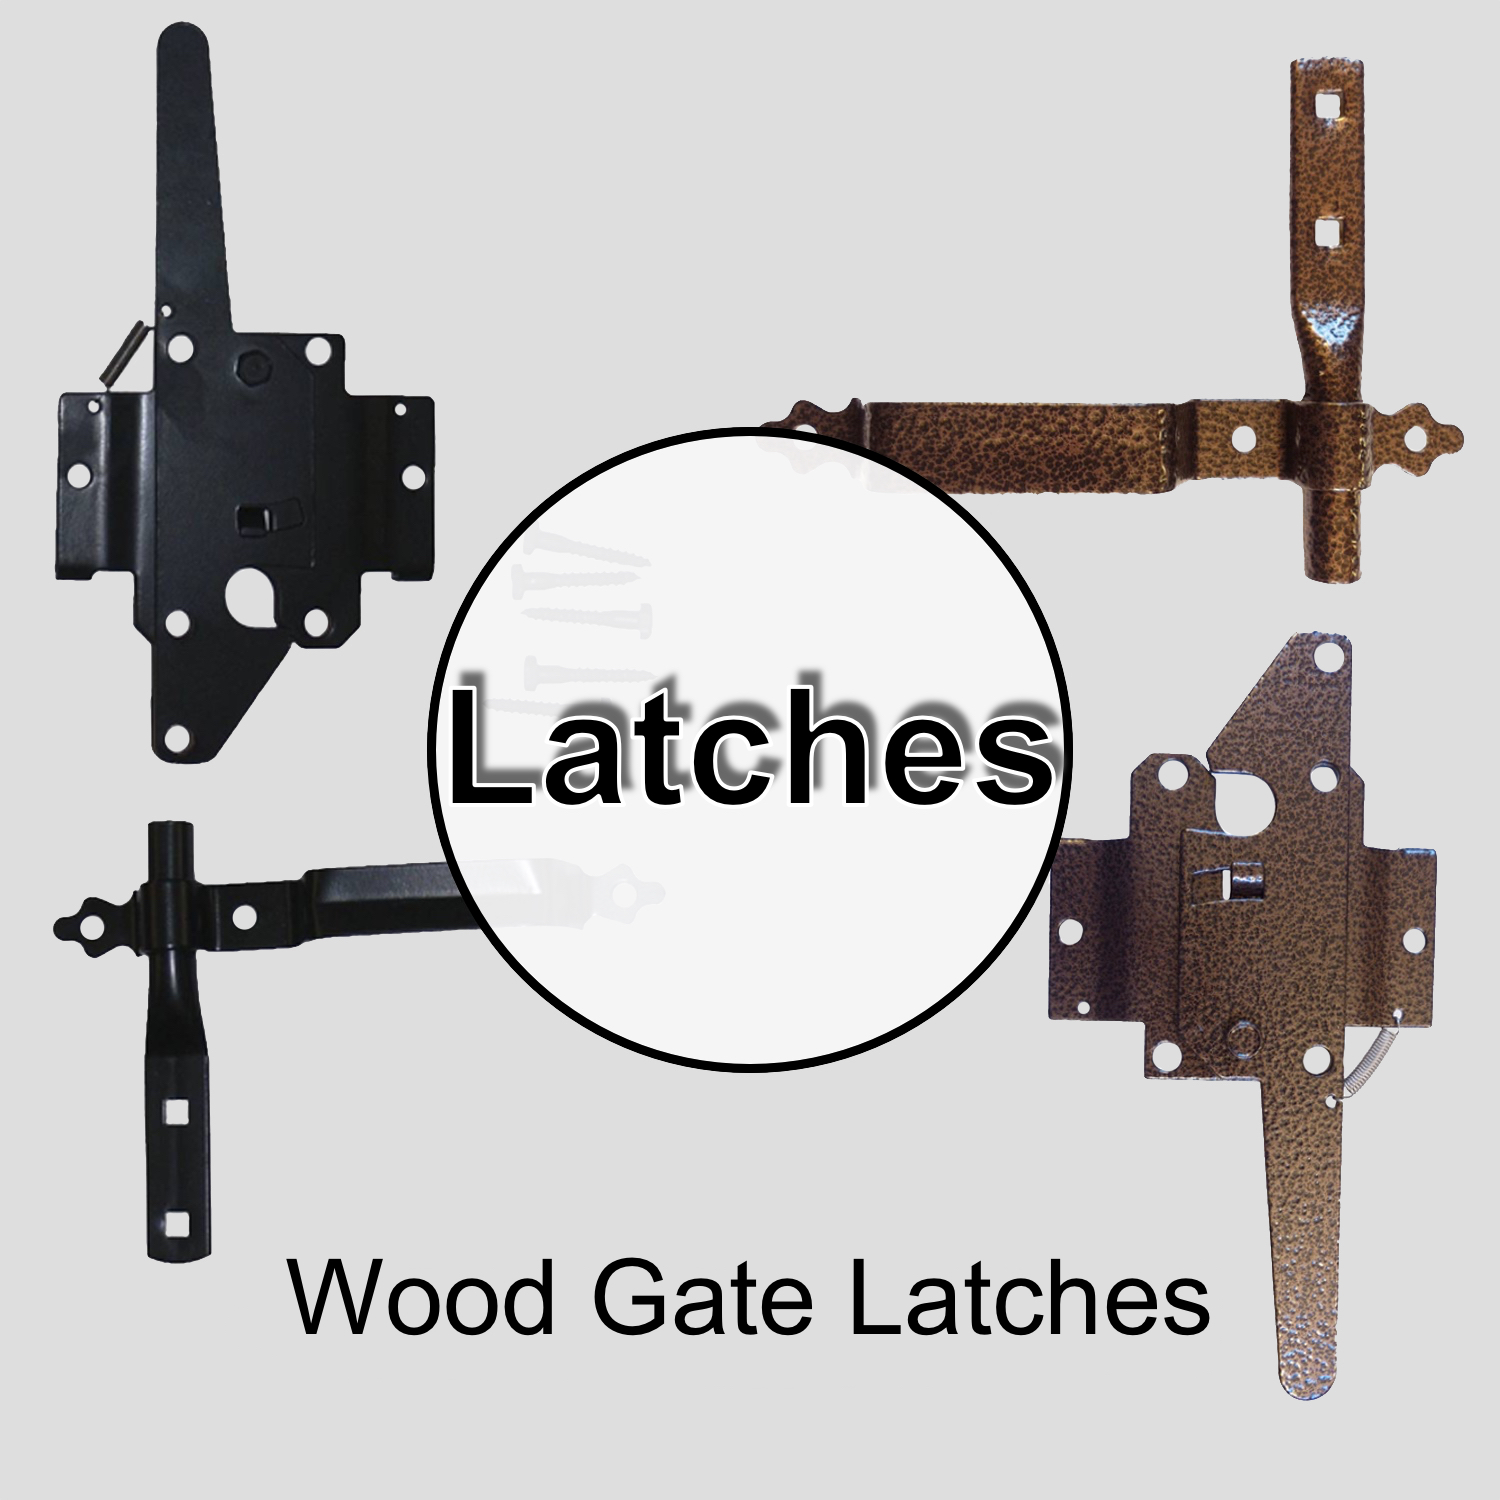 Wood Gate Latches & Handles